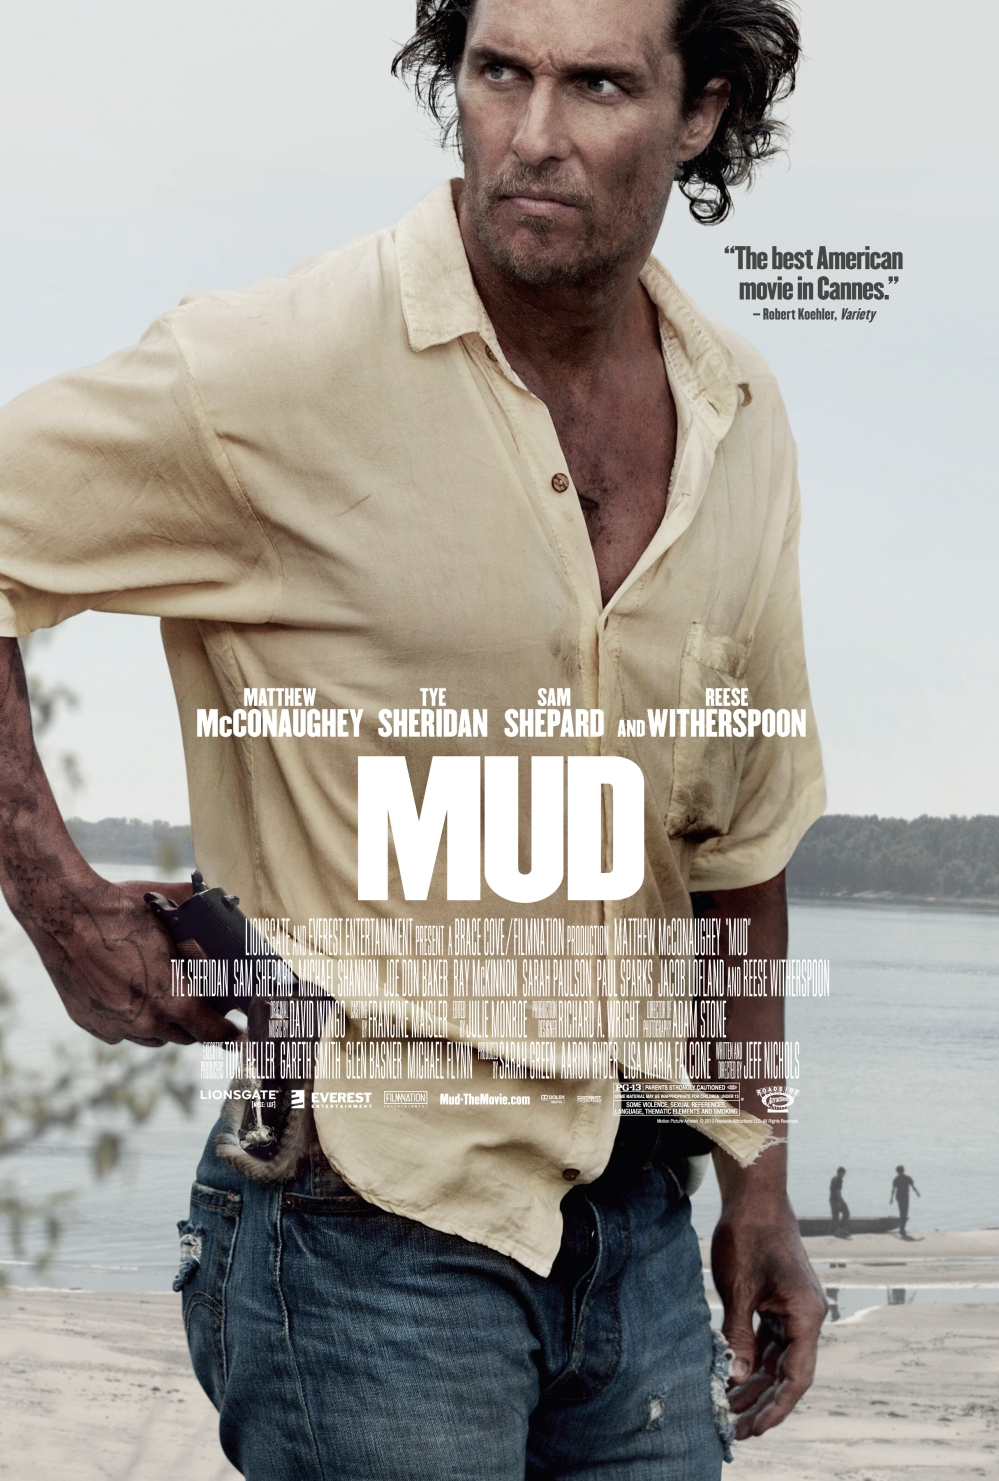 mud-matthew-mcconaughey-poster-movie